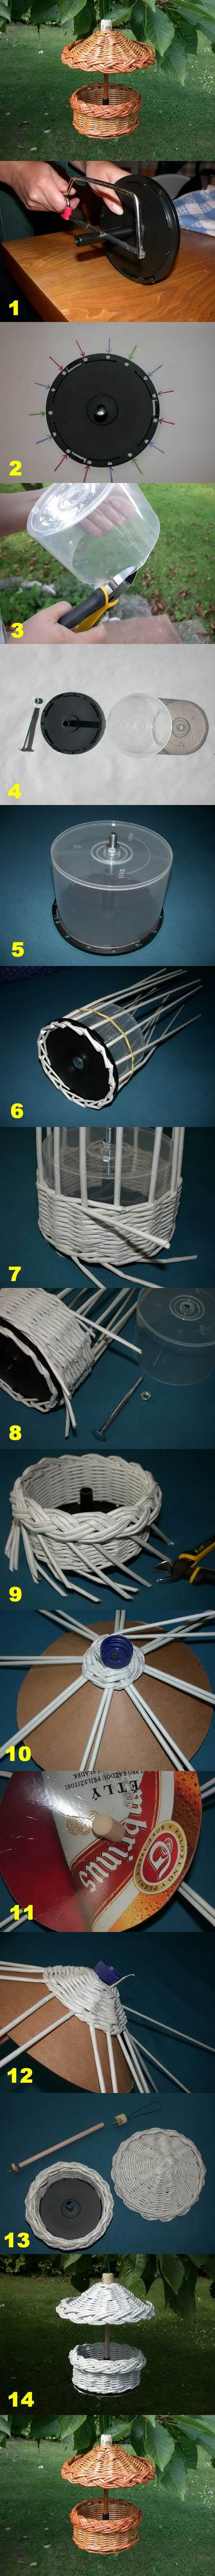 DIY Woven Paper Bird Feeder | iCreativeIdeas.com Follow Us on Facebook --> https://www.facebook.com/icreativeideas